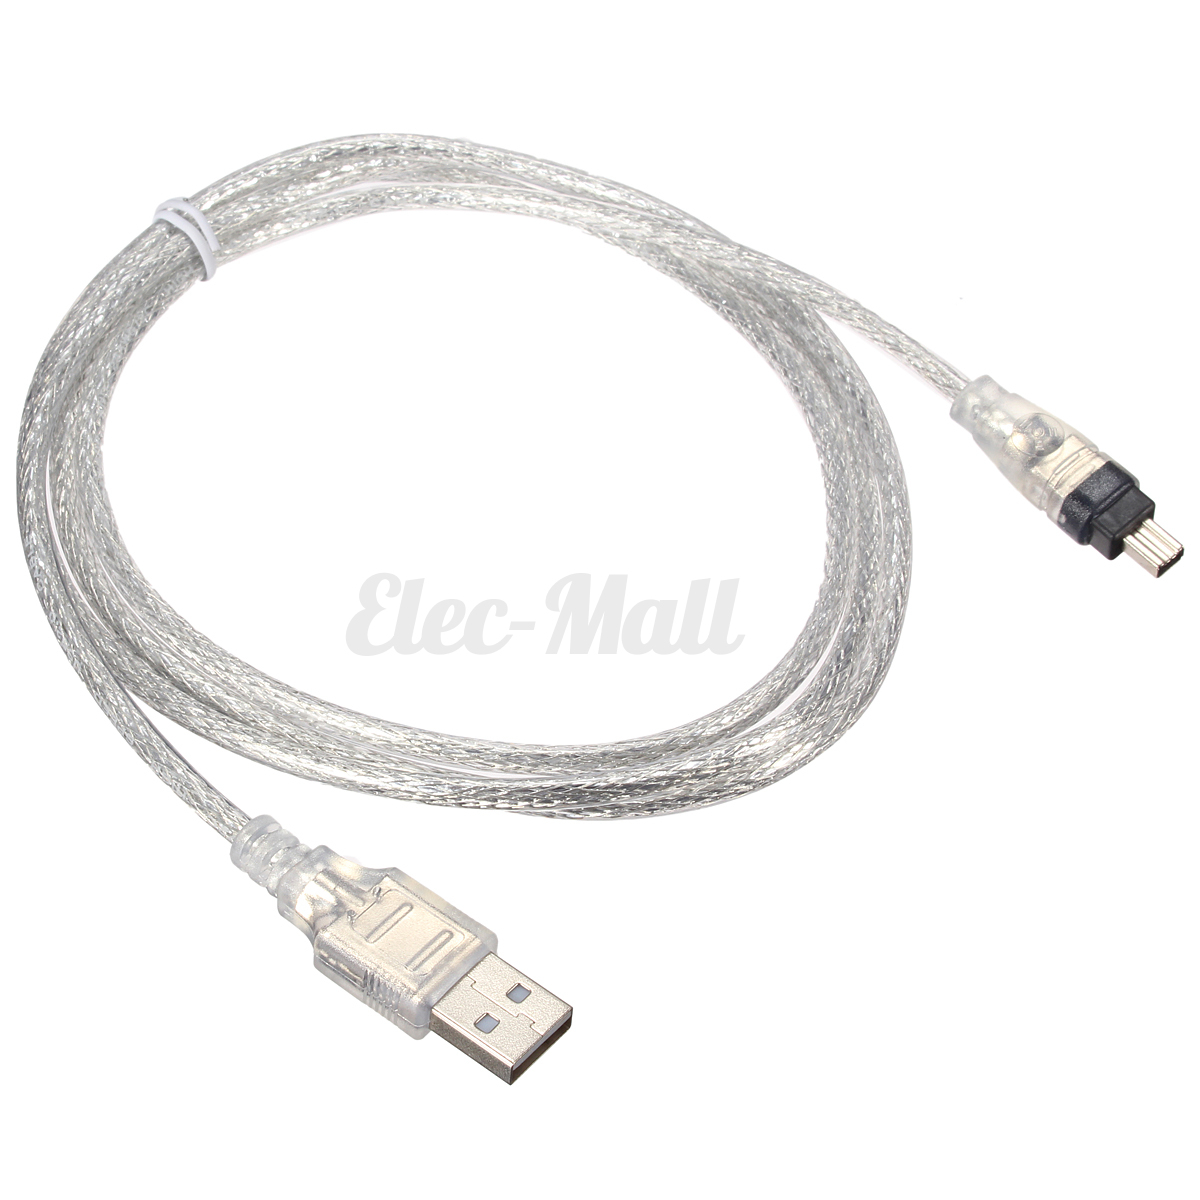 5FT USB 2.0 Male to 4 Pin IEEE 1394 Cable FireWire Adapter